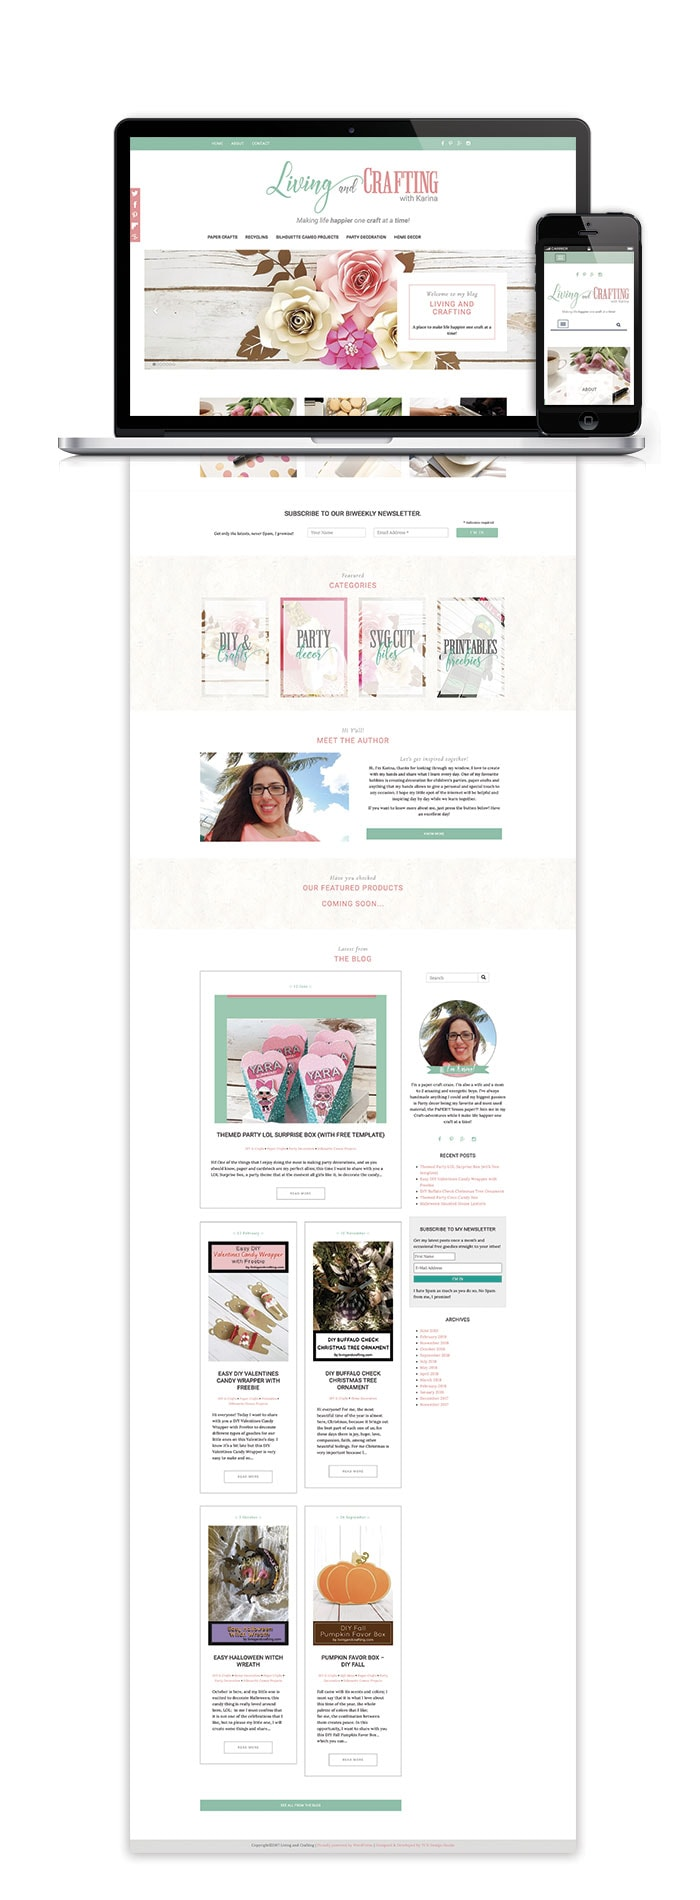 Living and Crafting Wbsite Blog Design 2018